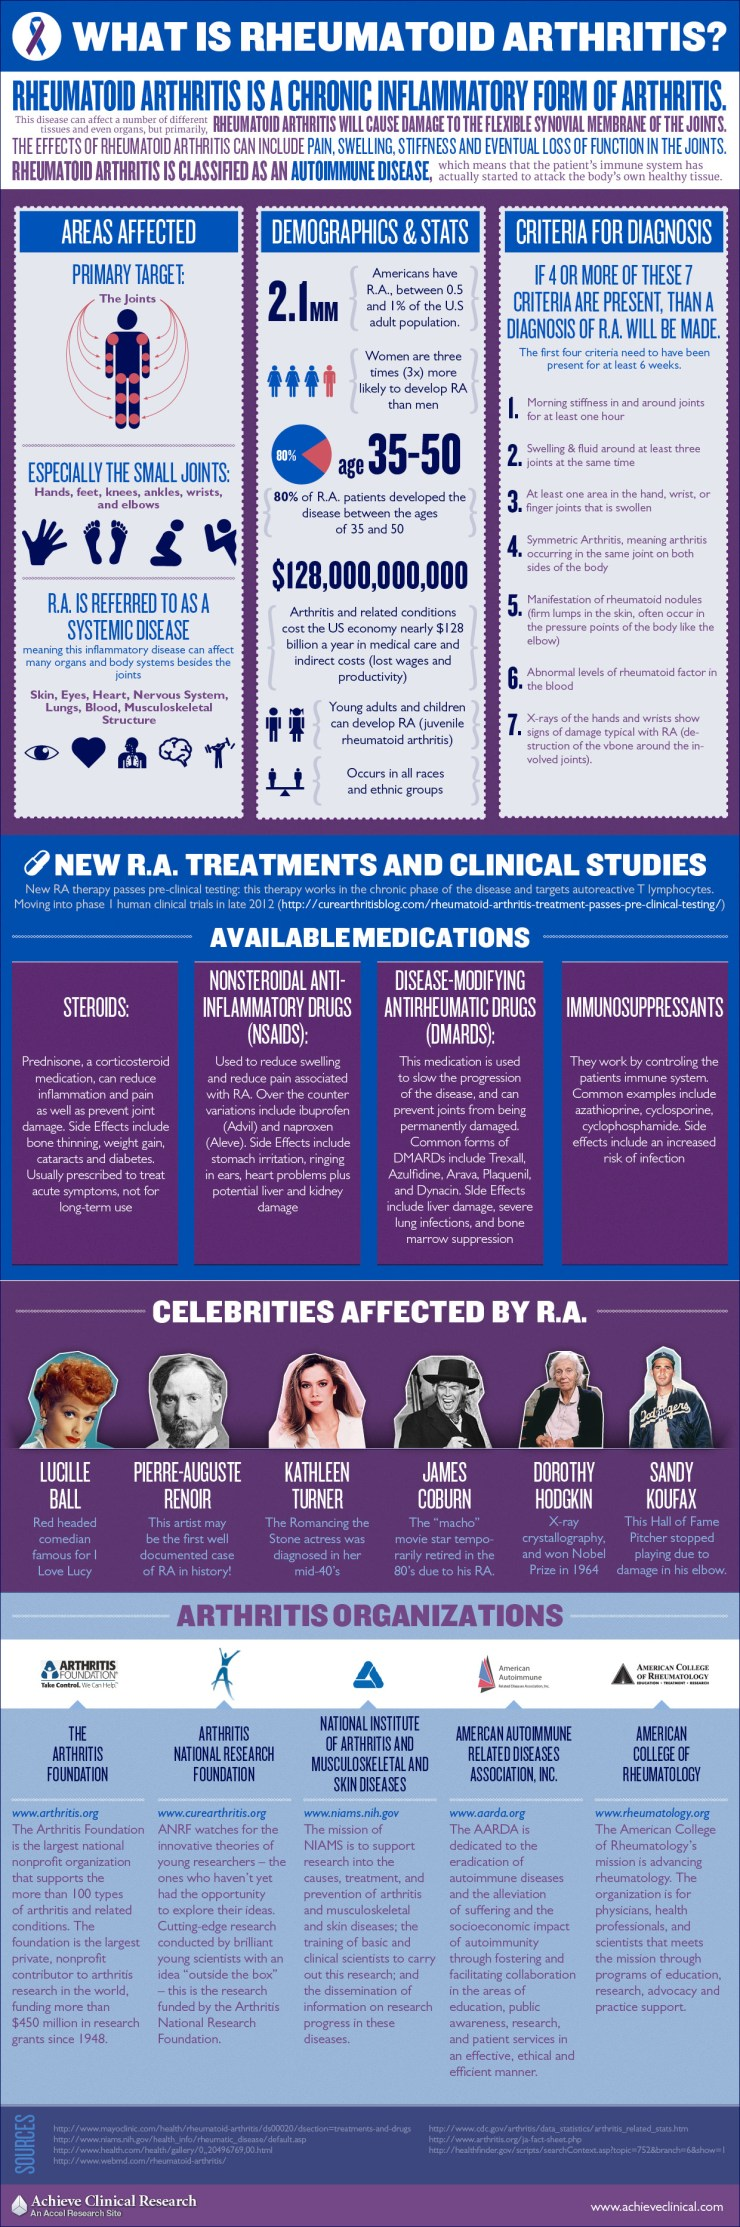 Click image to see larger version of Arthritis infographic